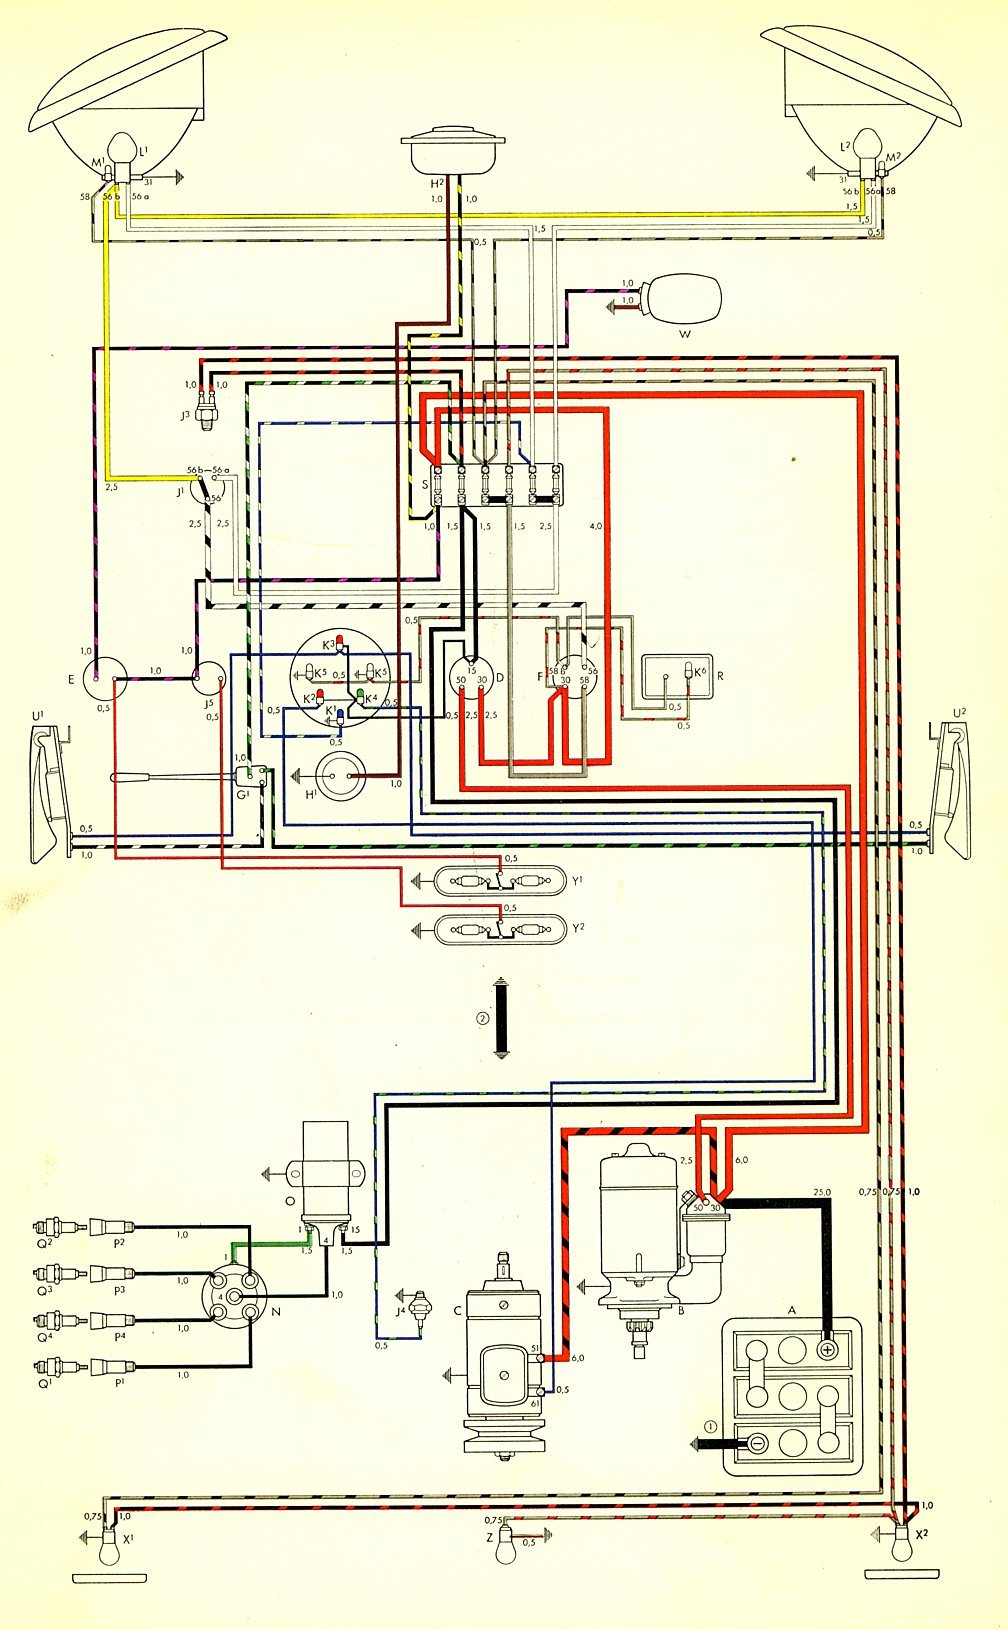 bus_59 vw bus wiring diagram 1965 vw bus wiring diagram \u2022 wiring diagrams 1970 vw beetle wiring diagram at edmiracle.co